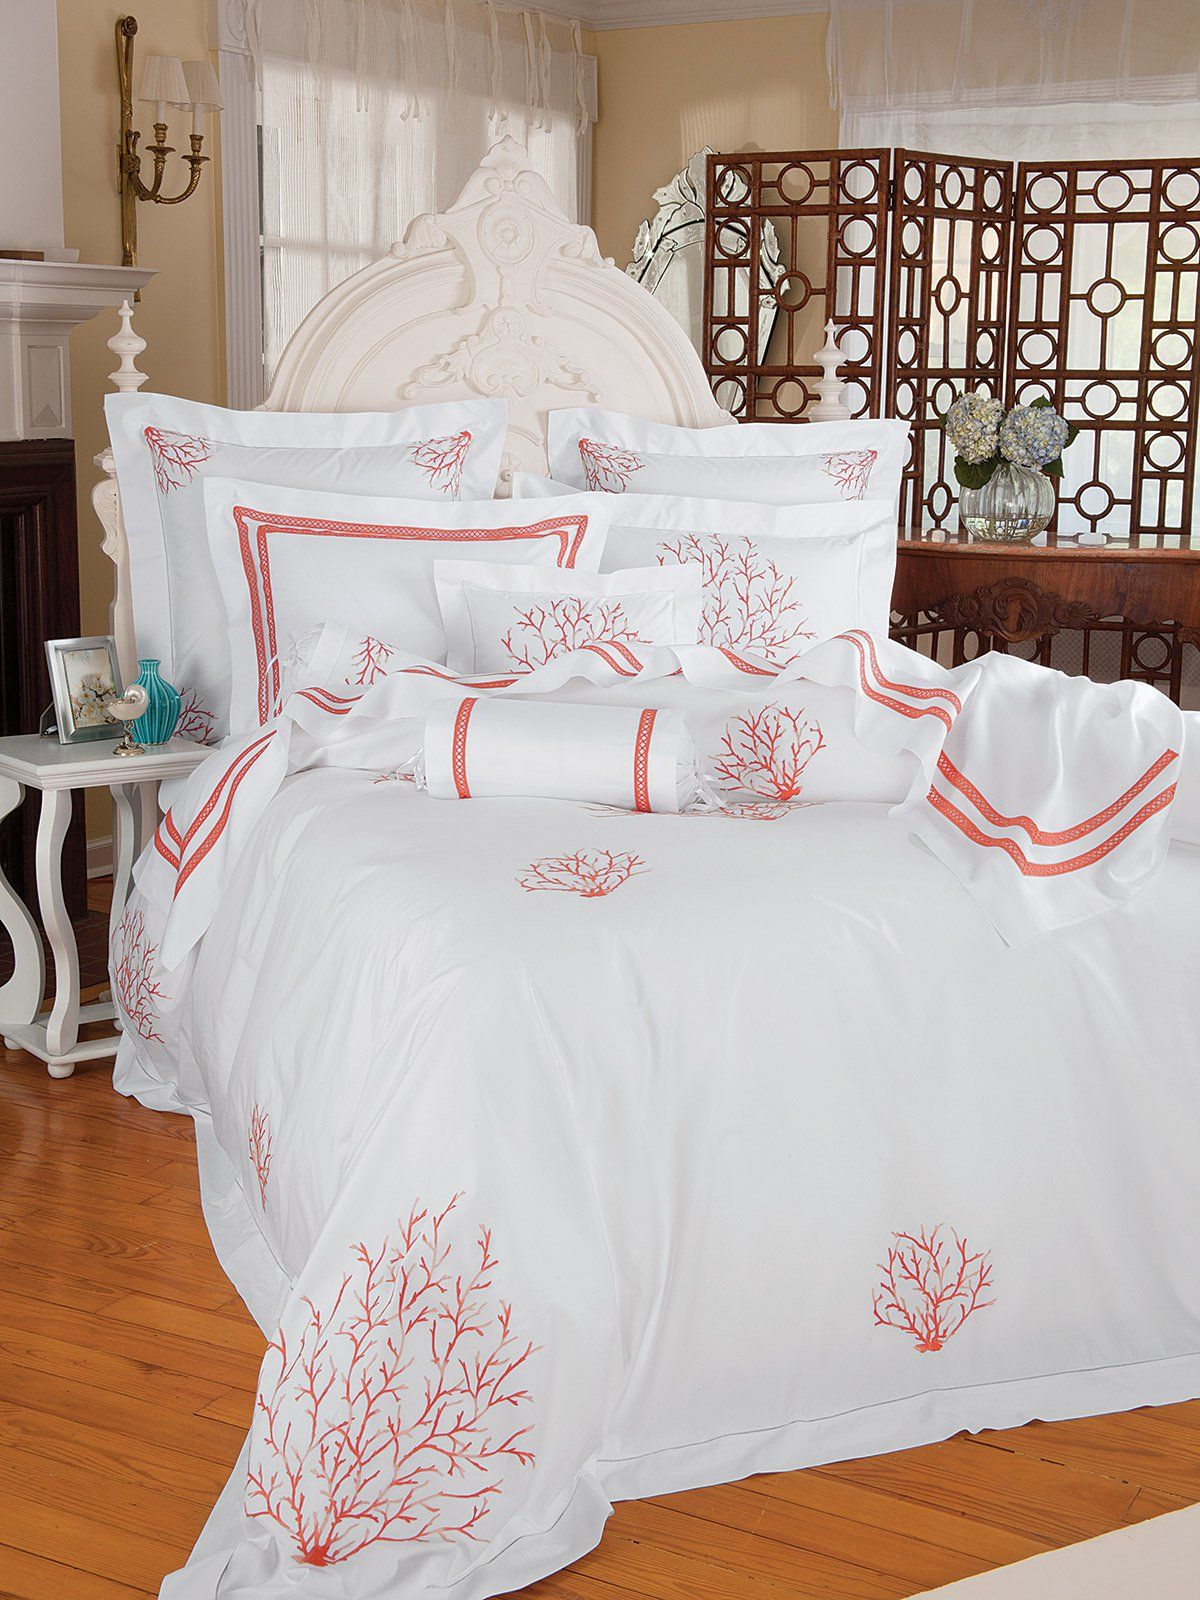 Coral Sea Luxury Bedding Italian Bed Linens